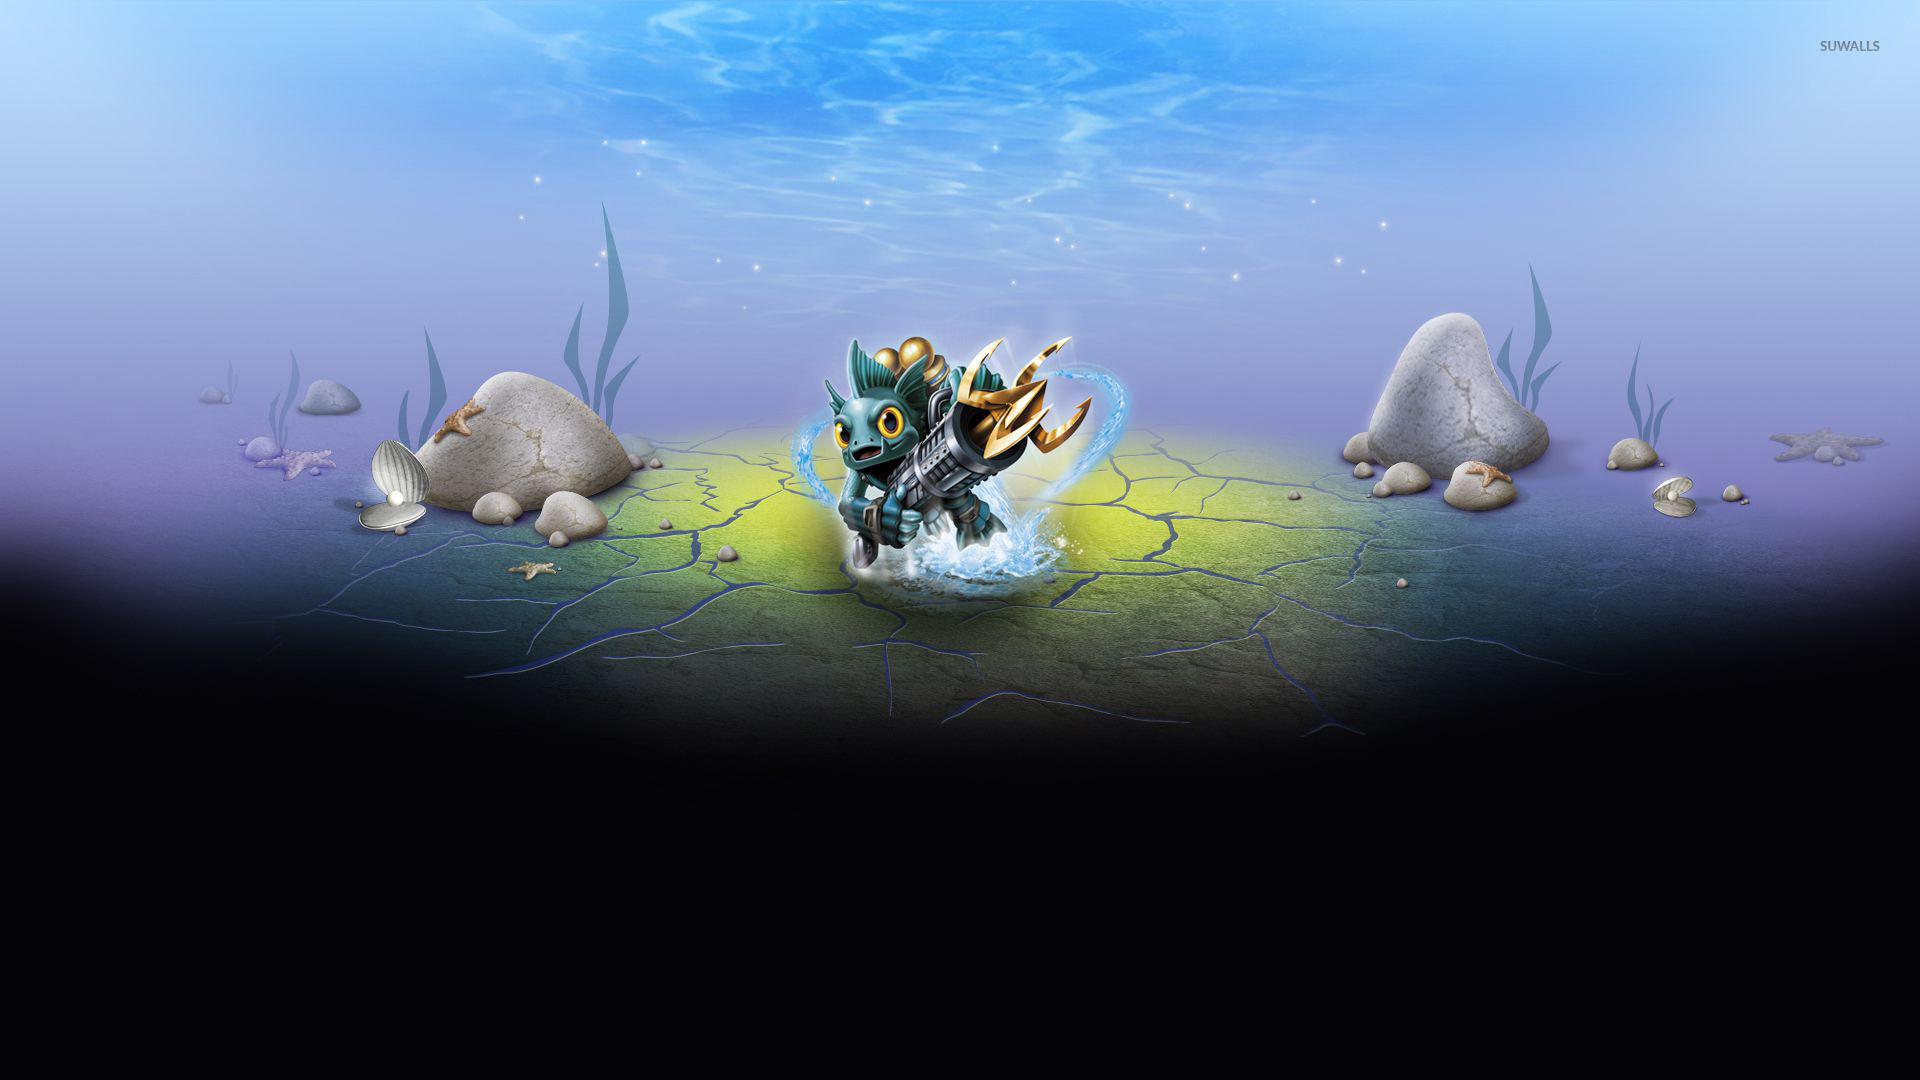 Gill Grunt   Skylanders Giants wallpaper   Game wallpapers   21777 1680x1050